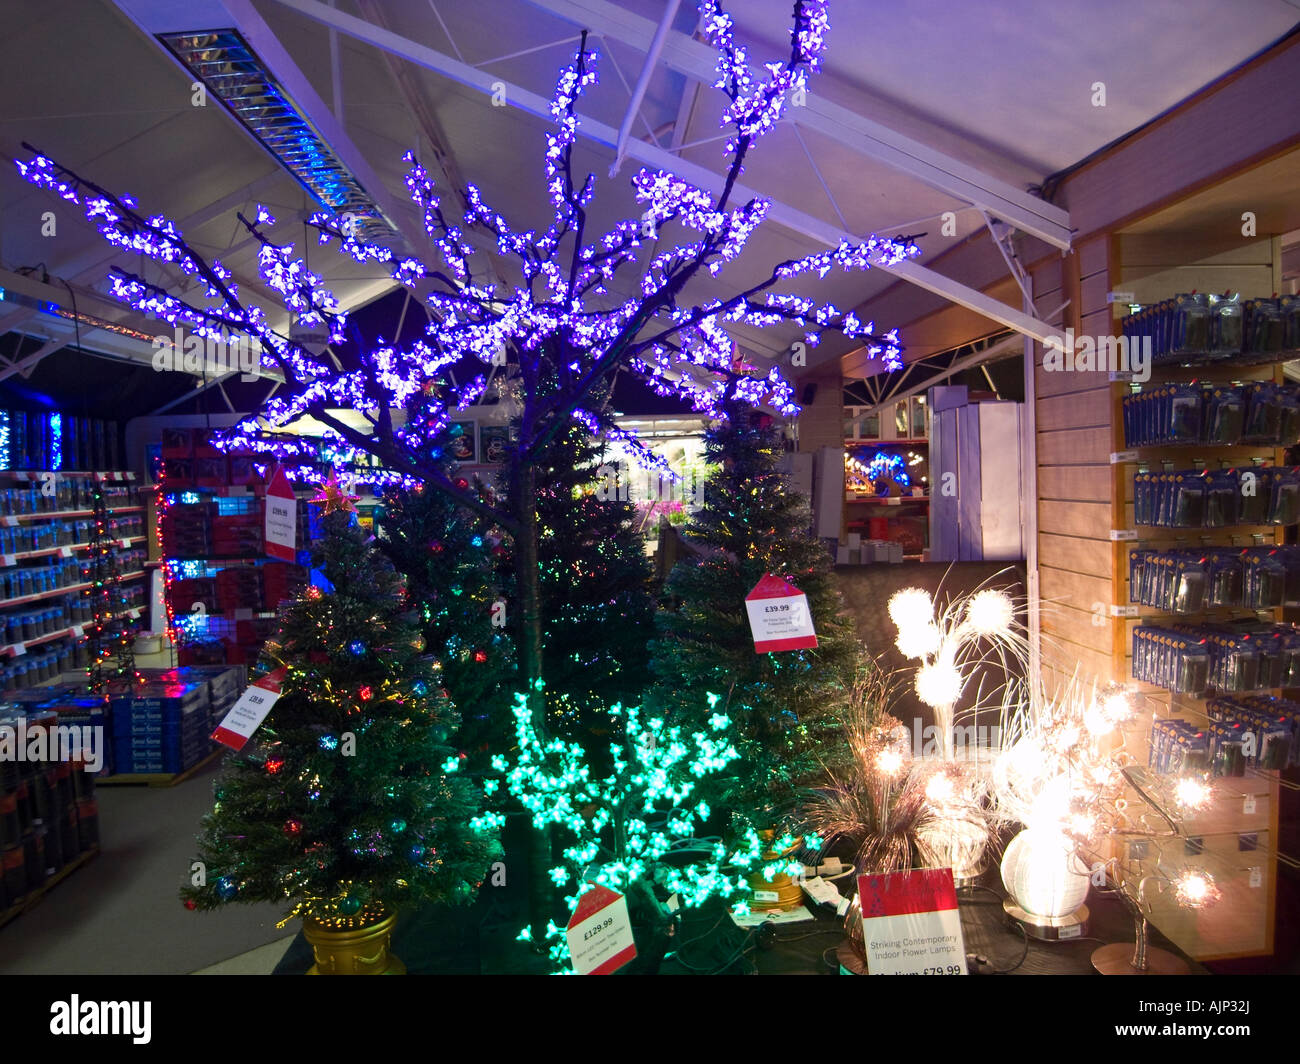 Christmas Decorations On Display In Uk Garden Centre Stock Photo Alamy